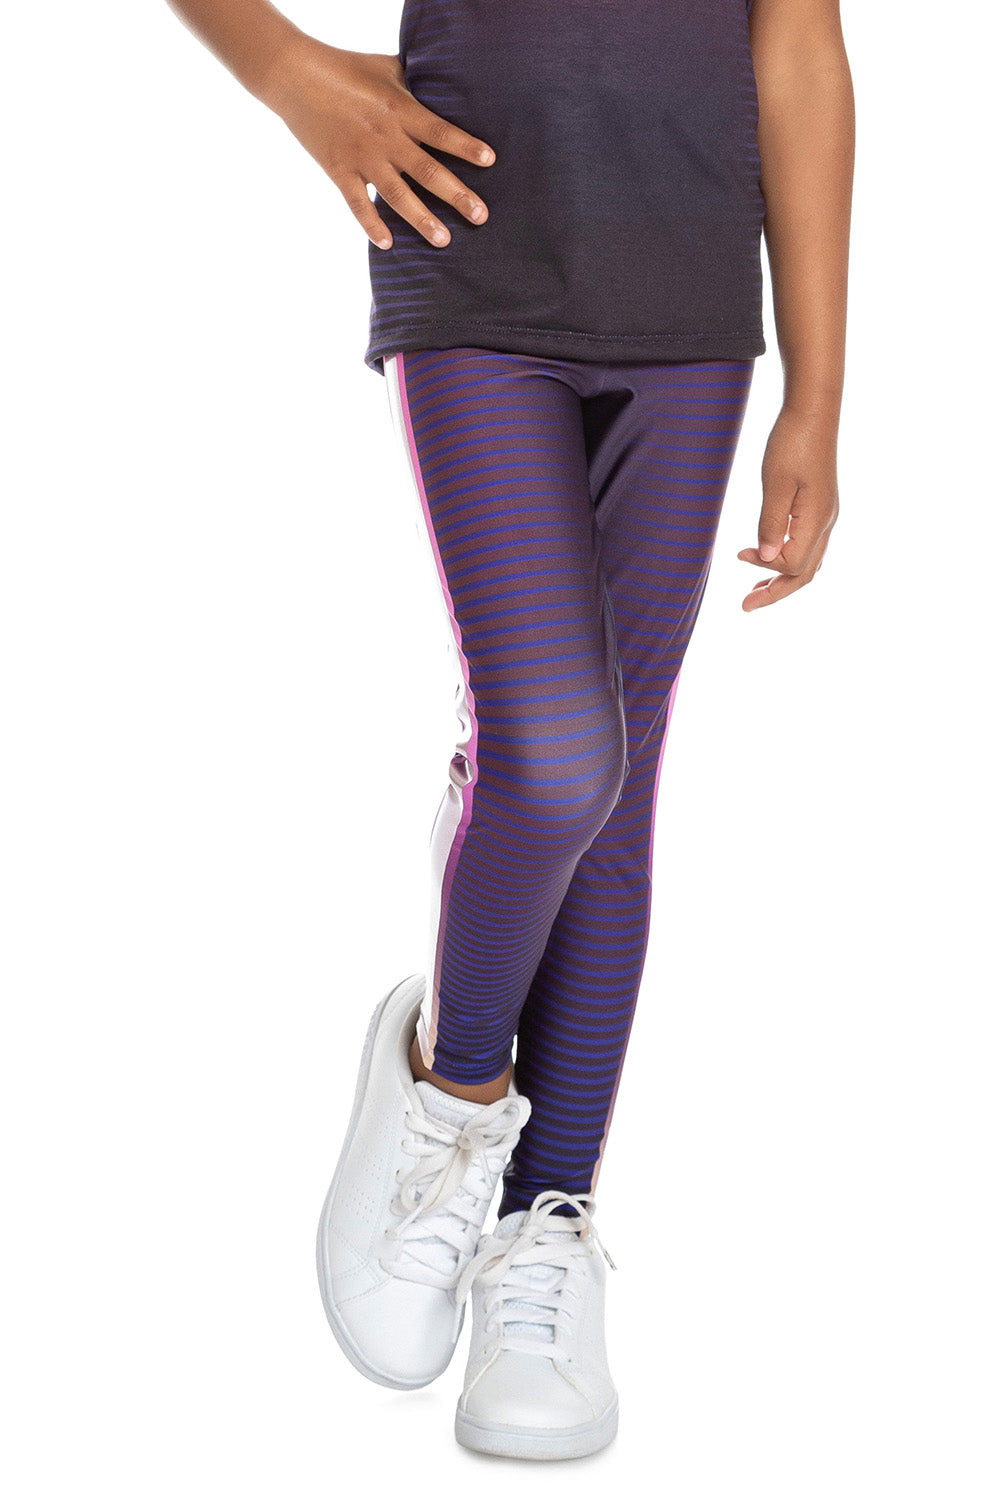 Ultimate Bonding Kids Legging 1